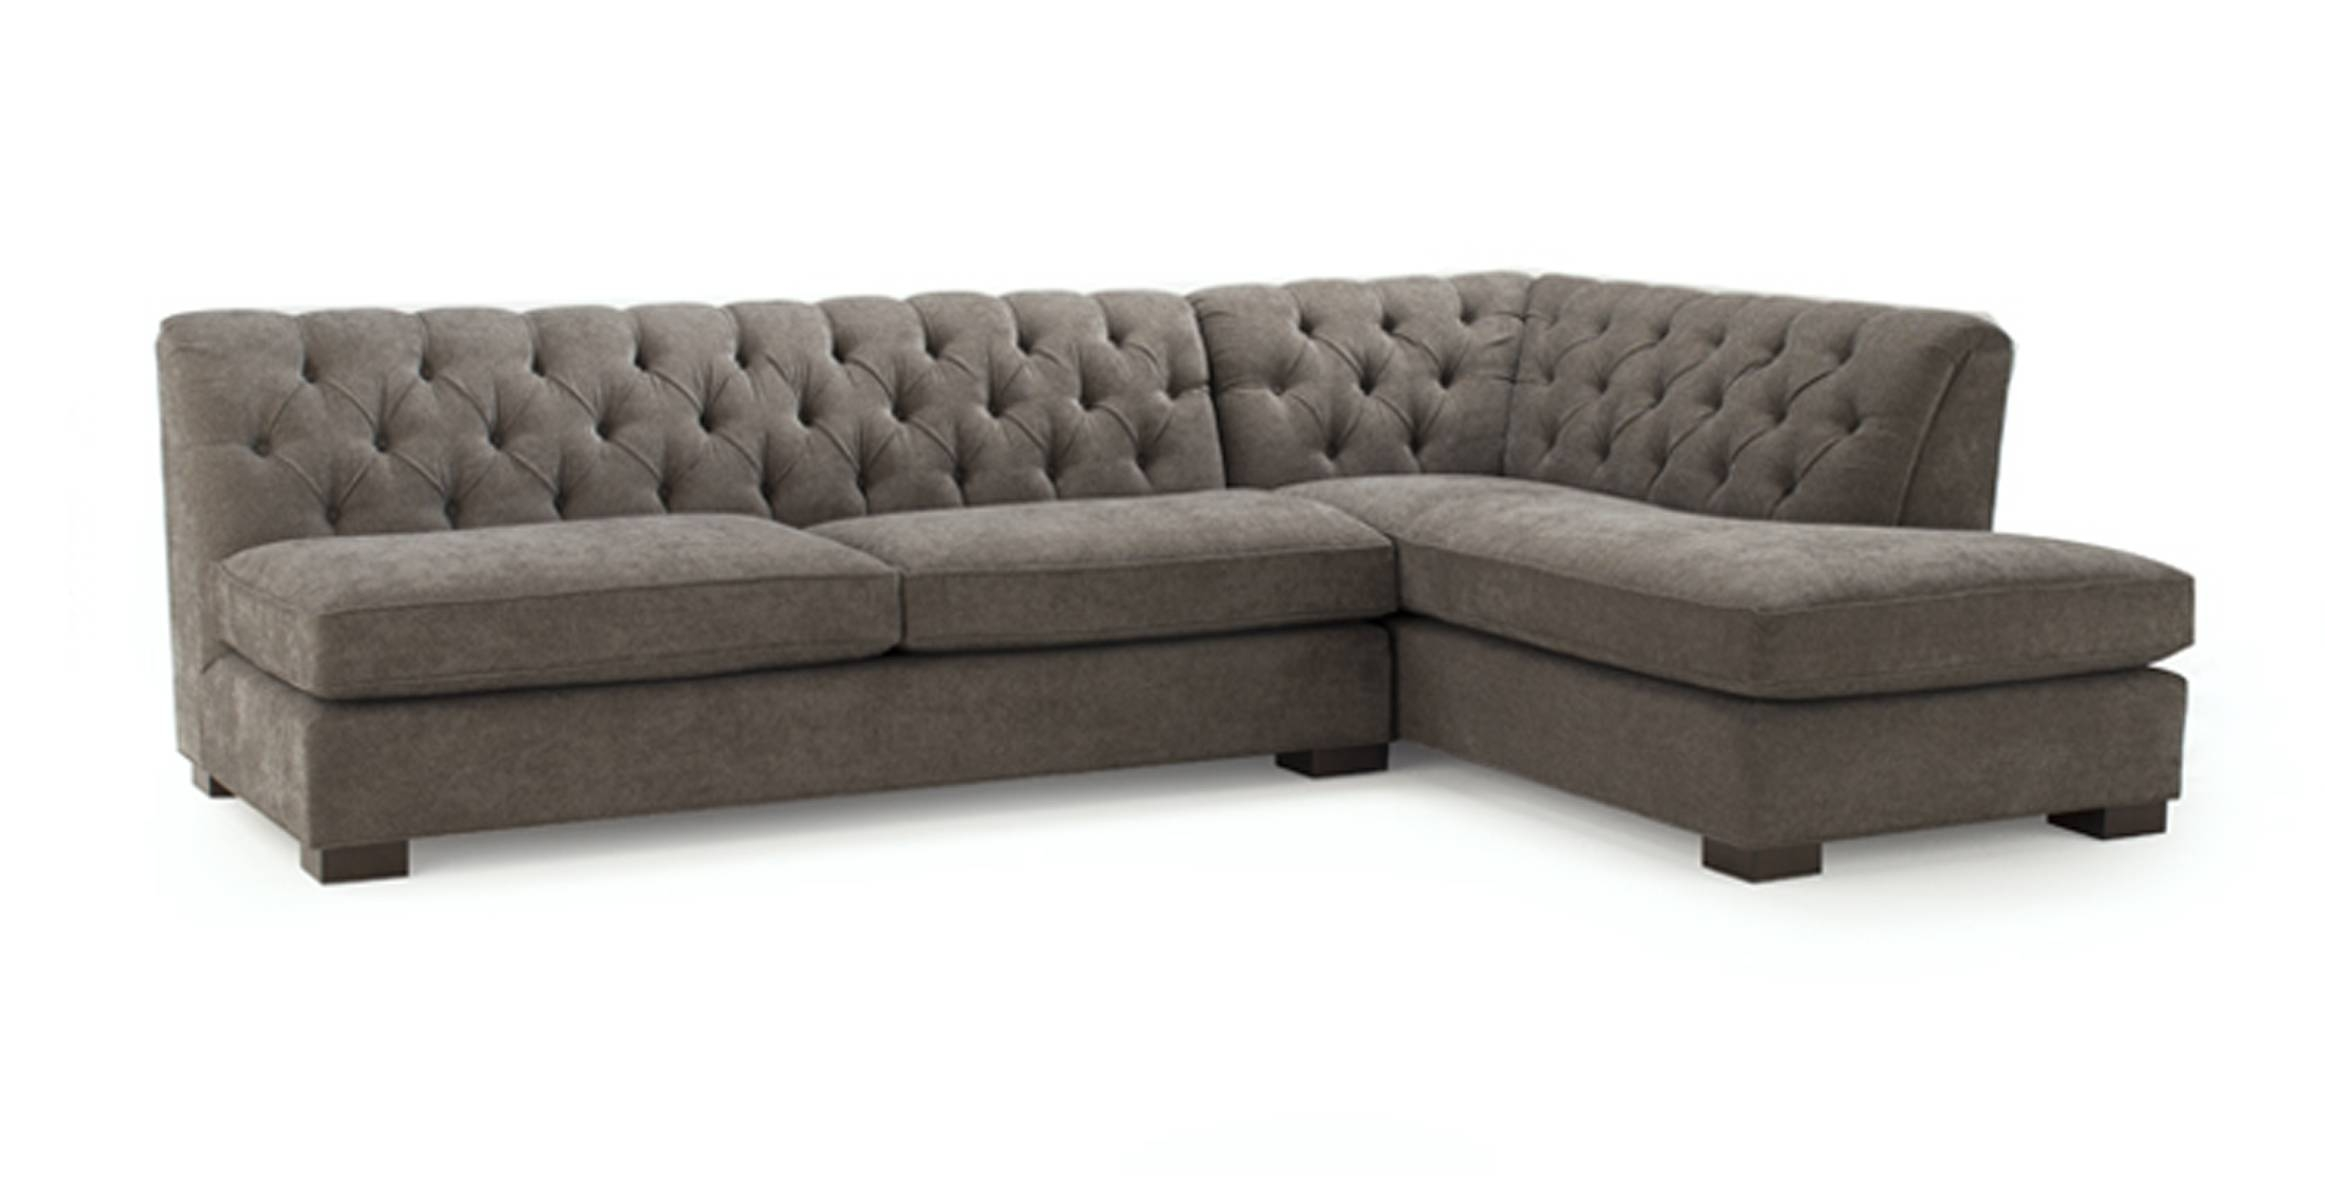 gold sectional sofa elite leather denver 2018 latest mitchell martin sofas